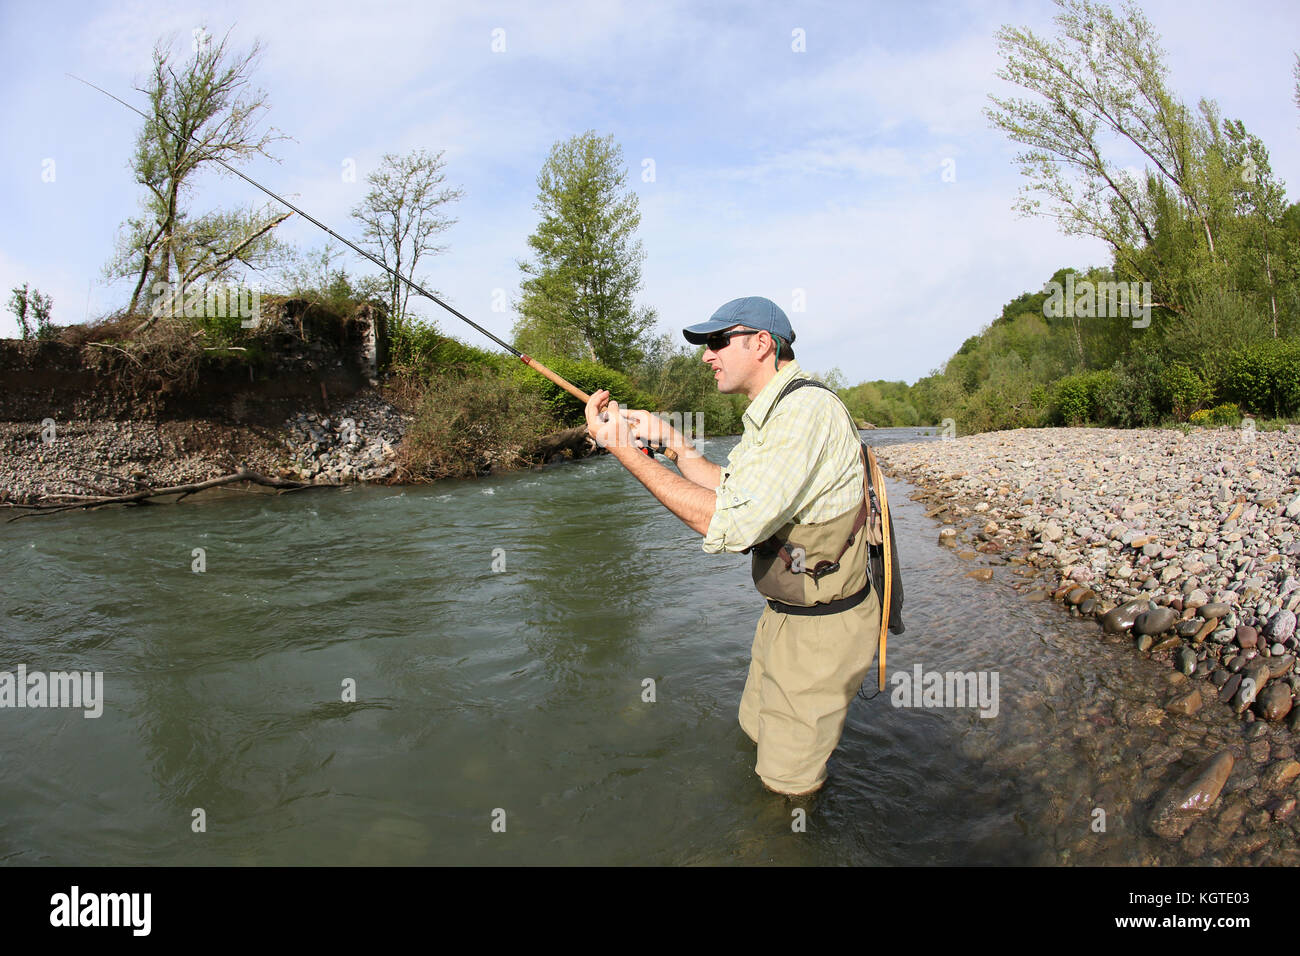 Pole and line caught stock photos pole and line caught for River fishing pole